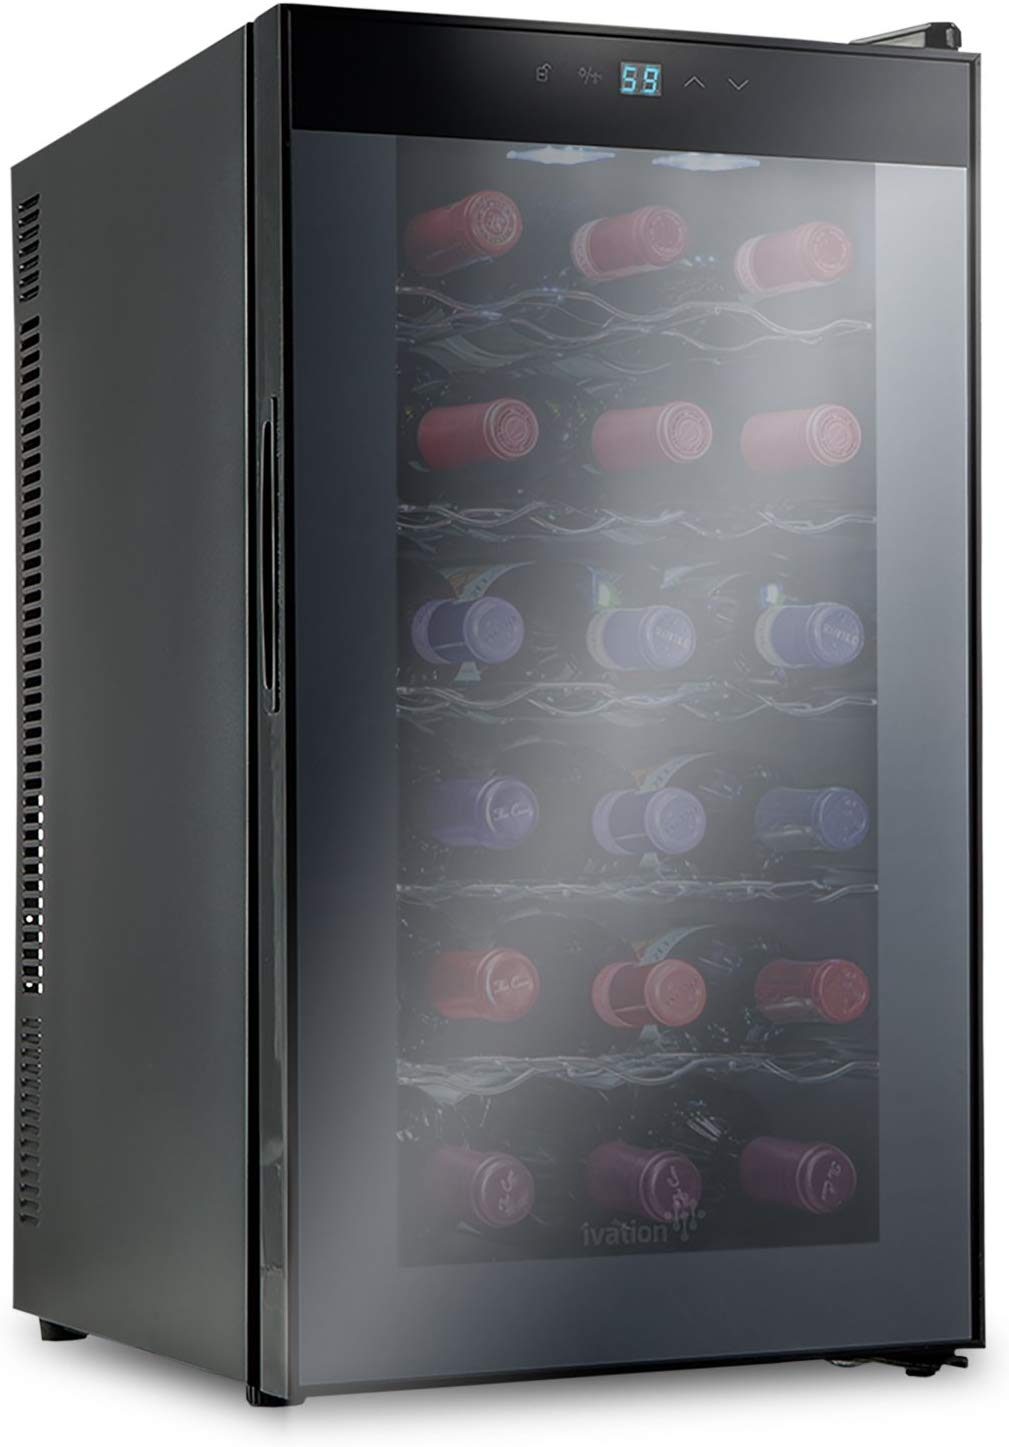 Best for Wine Cooling: The Ivation Wine Cooler